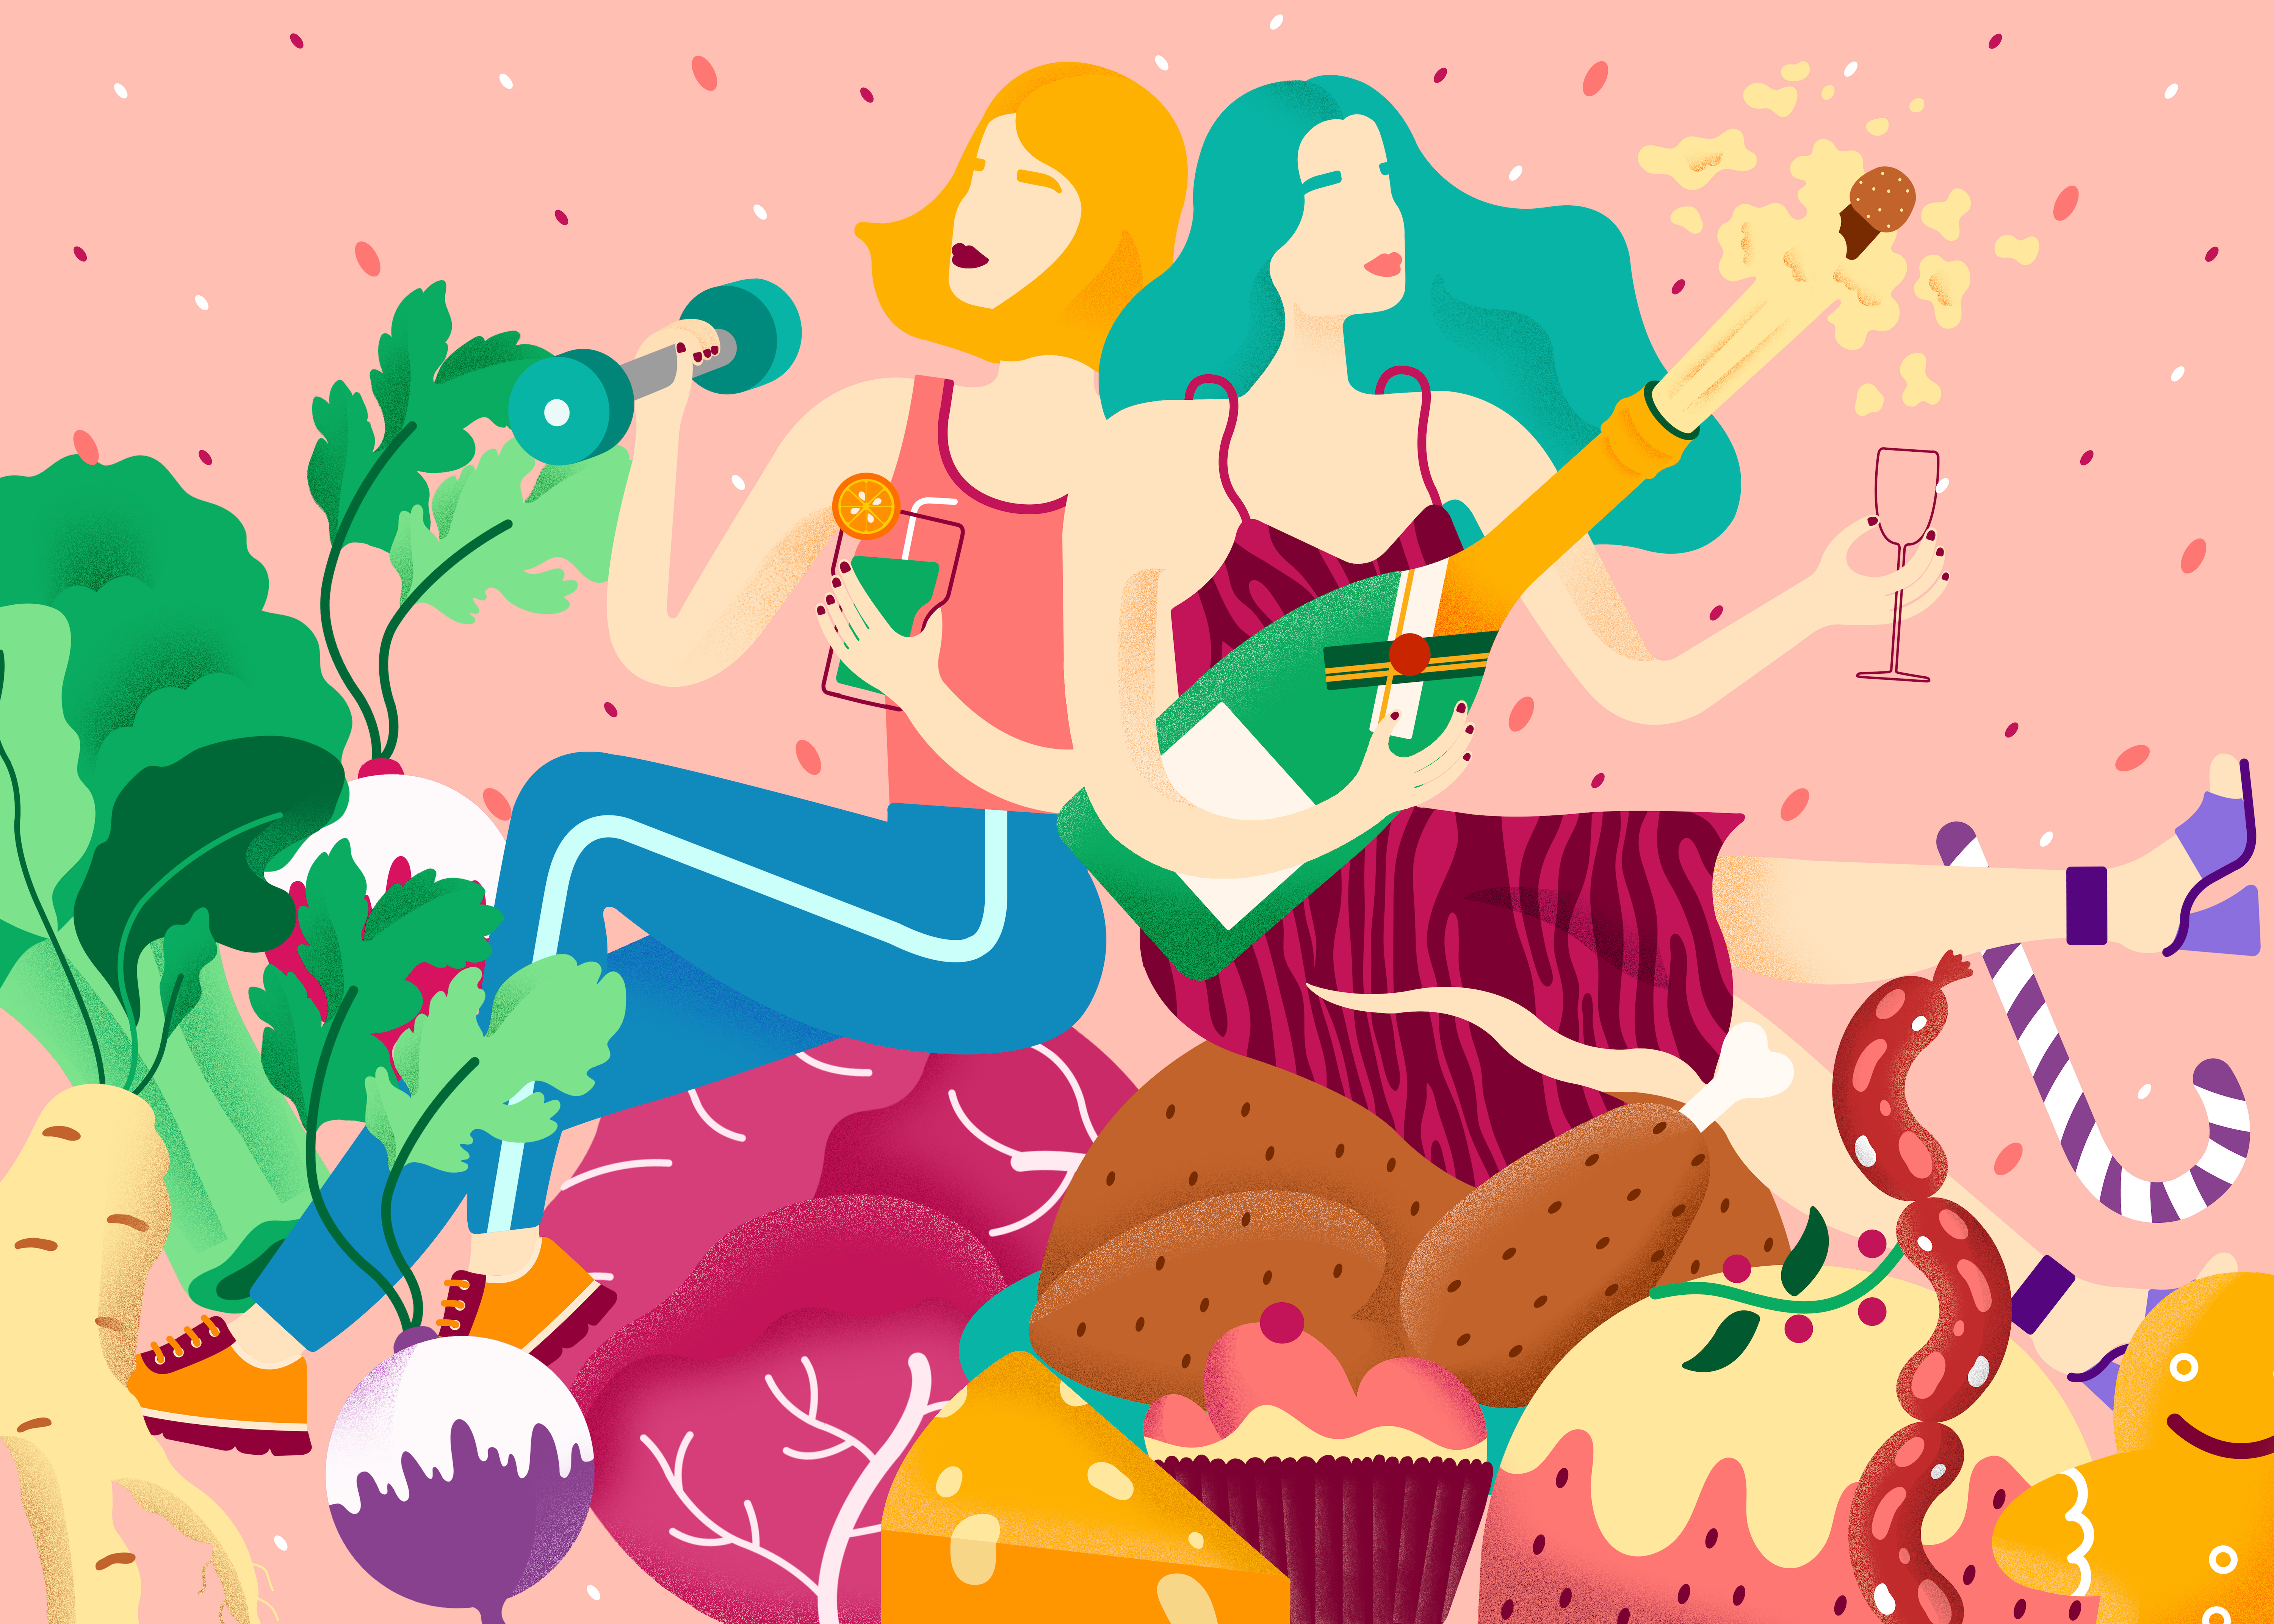 Illustration for an article on January detoxing in The Washington post